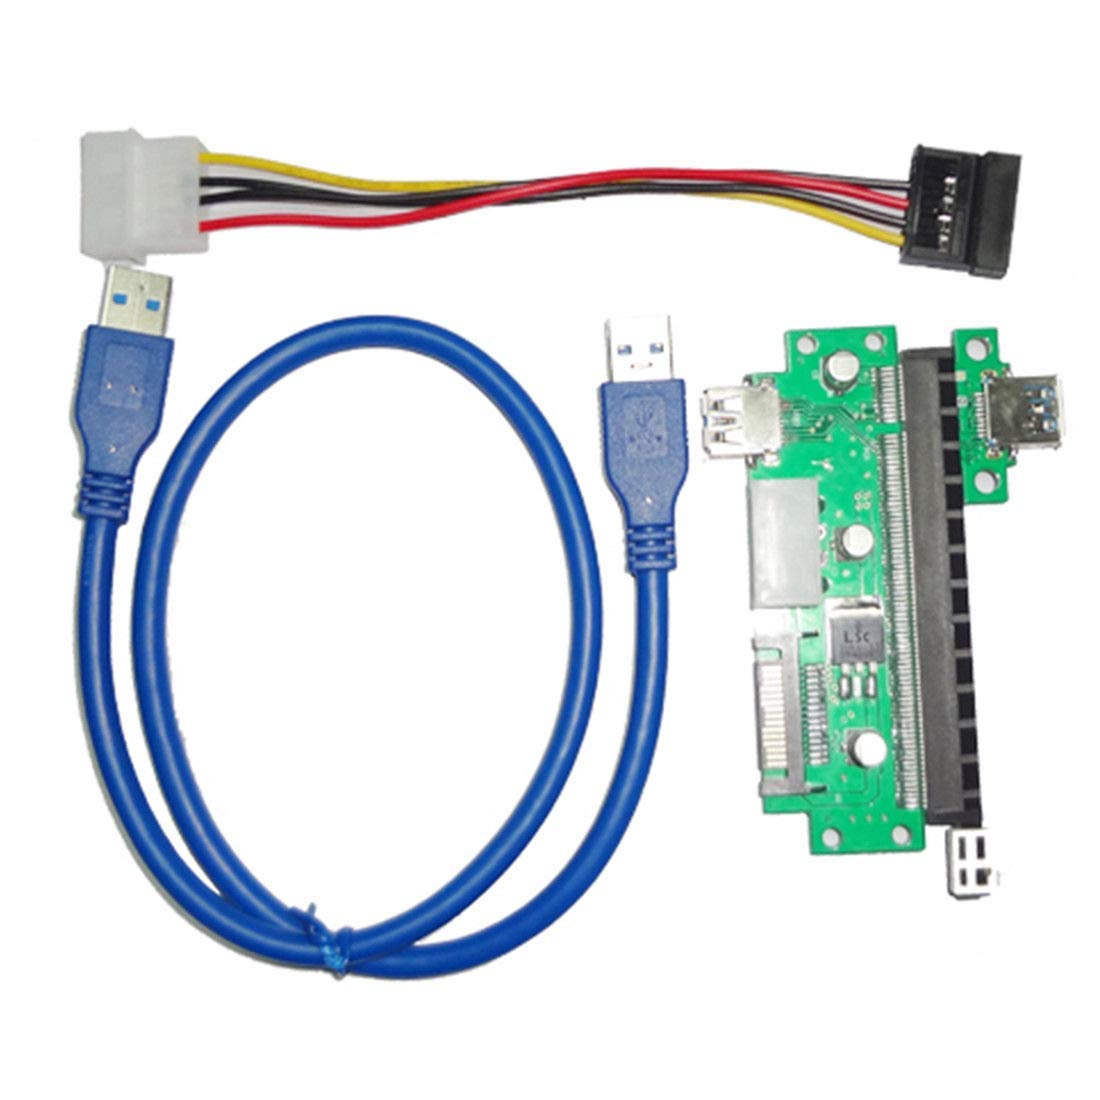 hight resolution of fidgetfidget cable pcie usb3 0 graphics display cable wire pci e x1 to x16